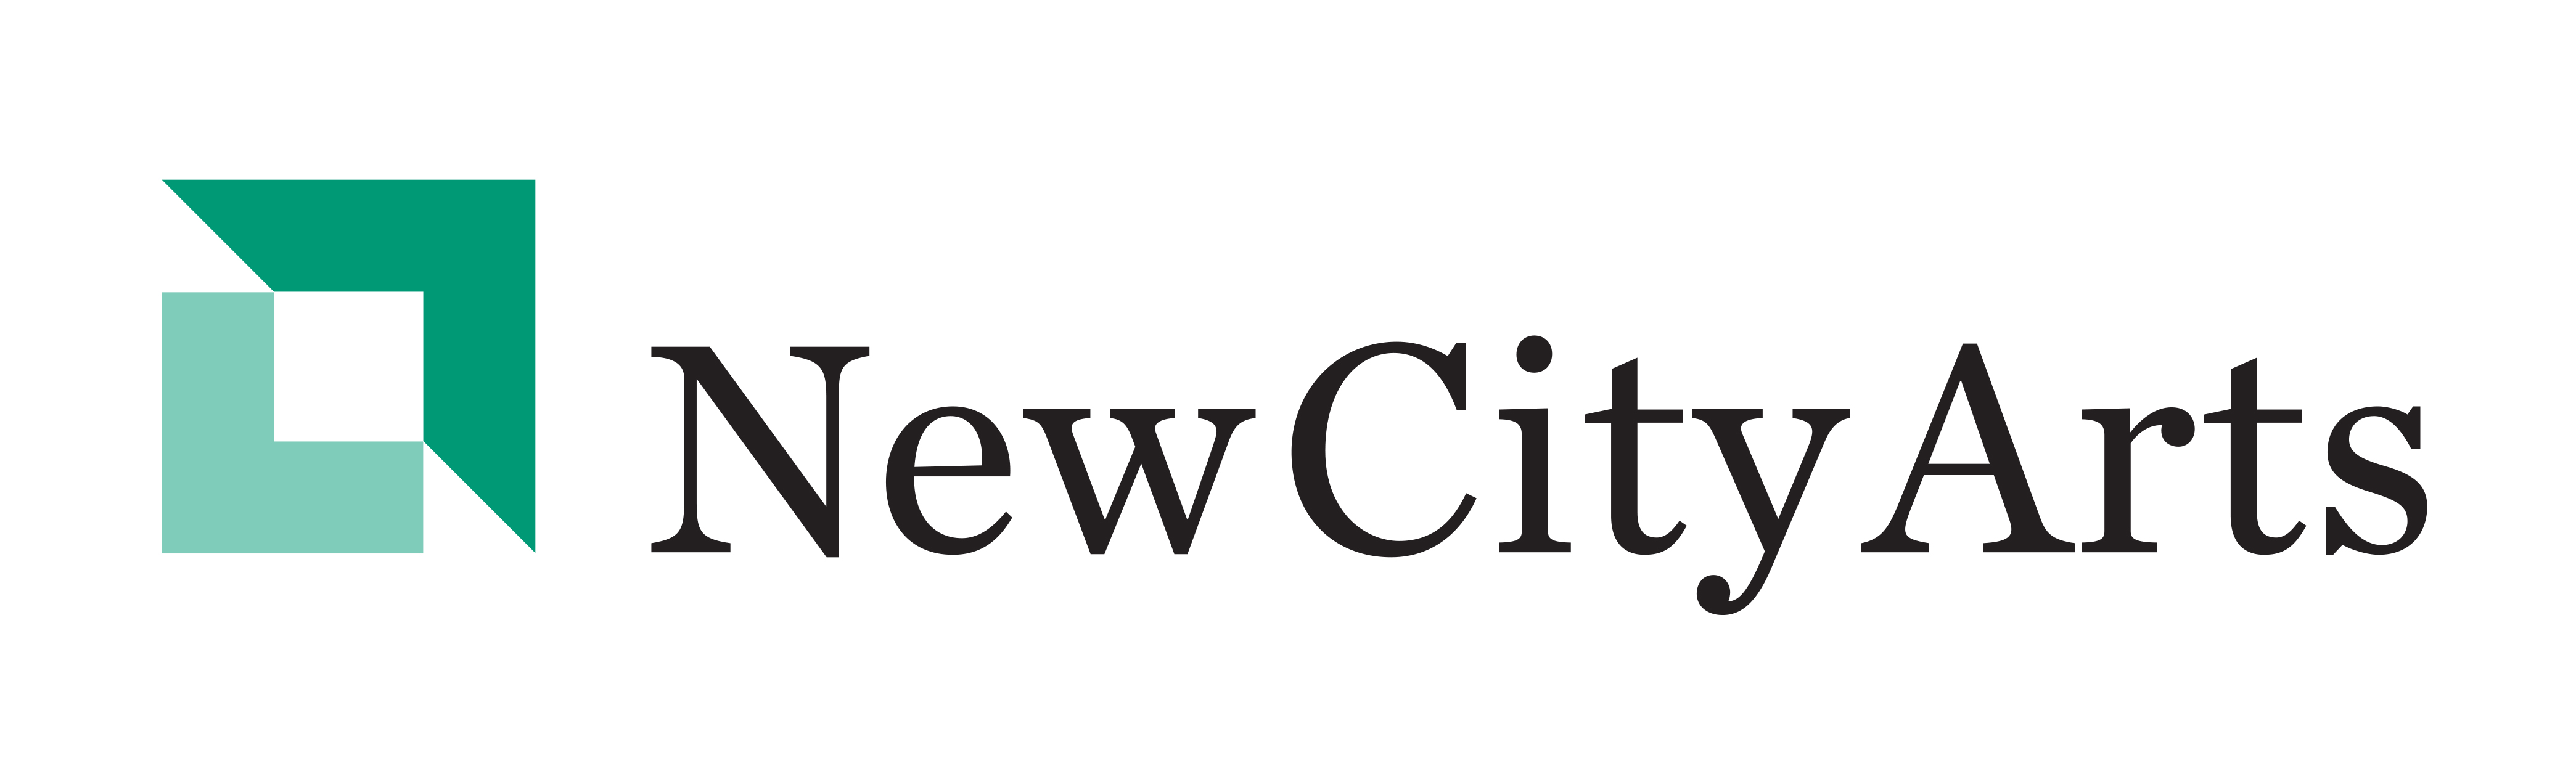 New_City_Arts_logo.jpg